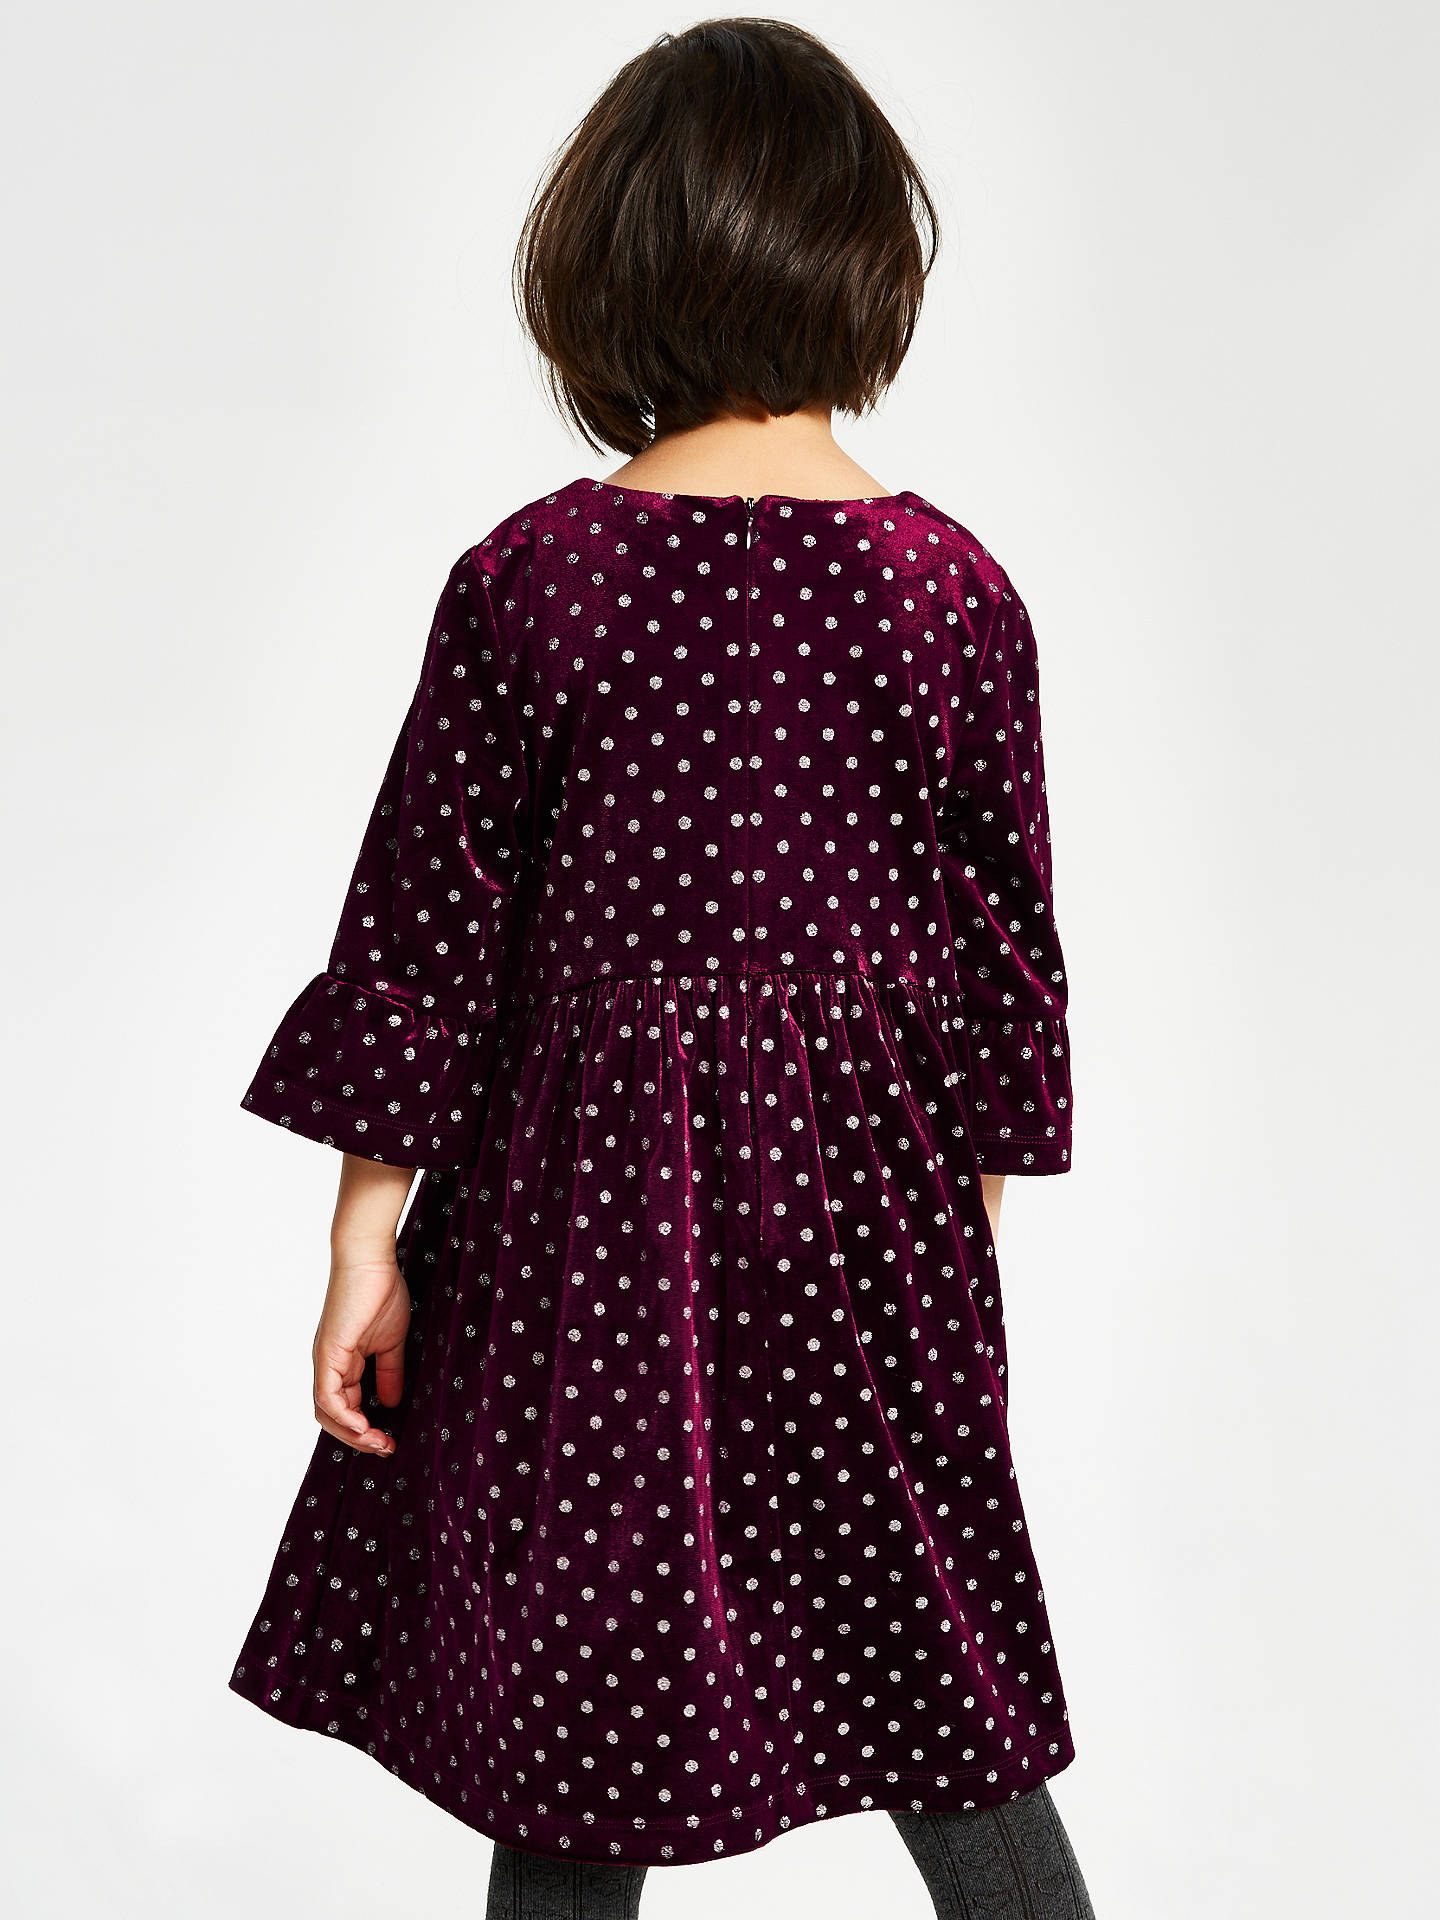 BuyJohn Lewis & Partners Girls' Velour Glitter Spot Dress, Berry, 2 years Online at johnlewis.com